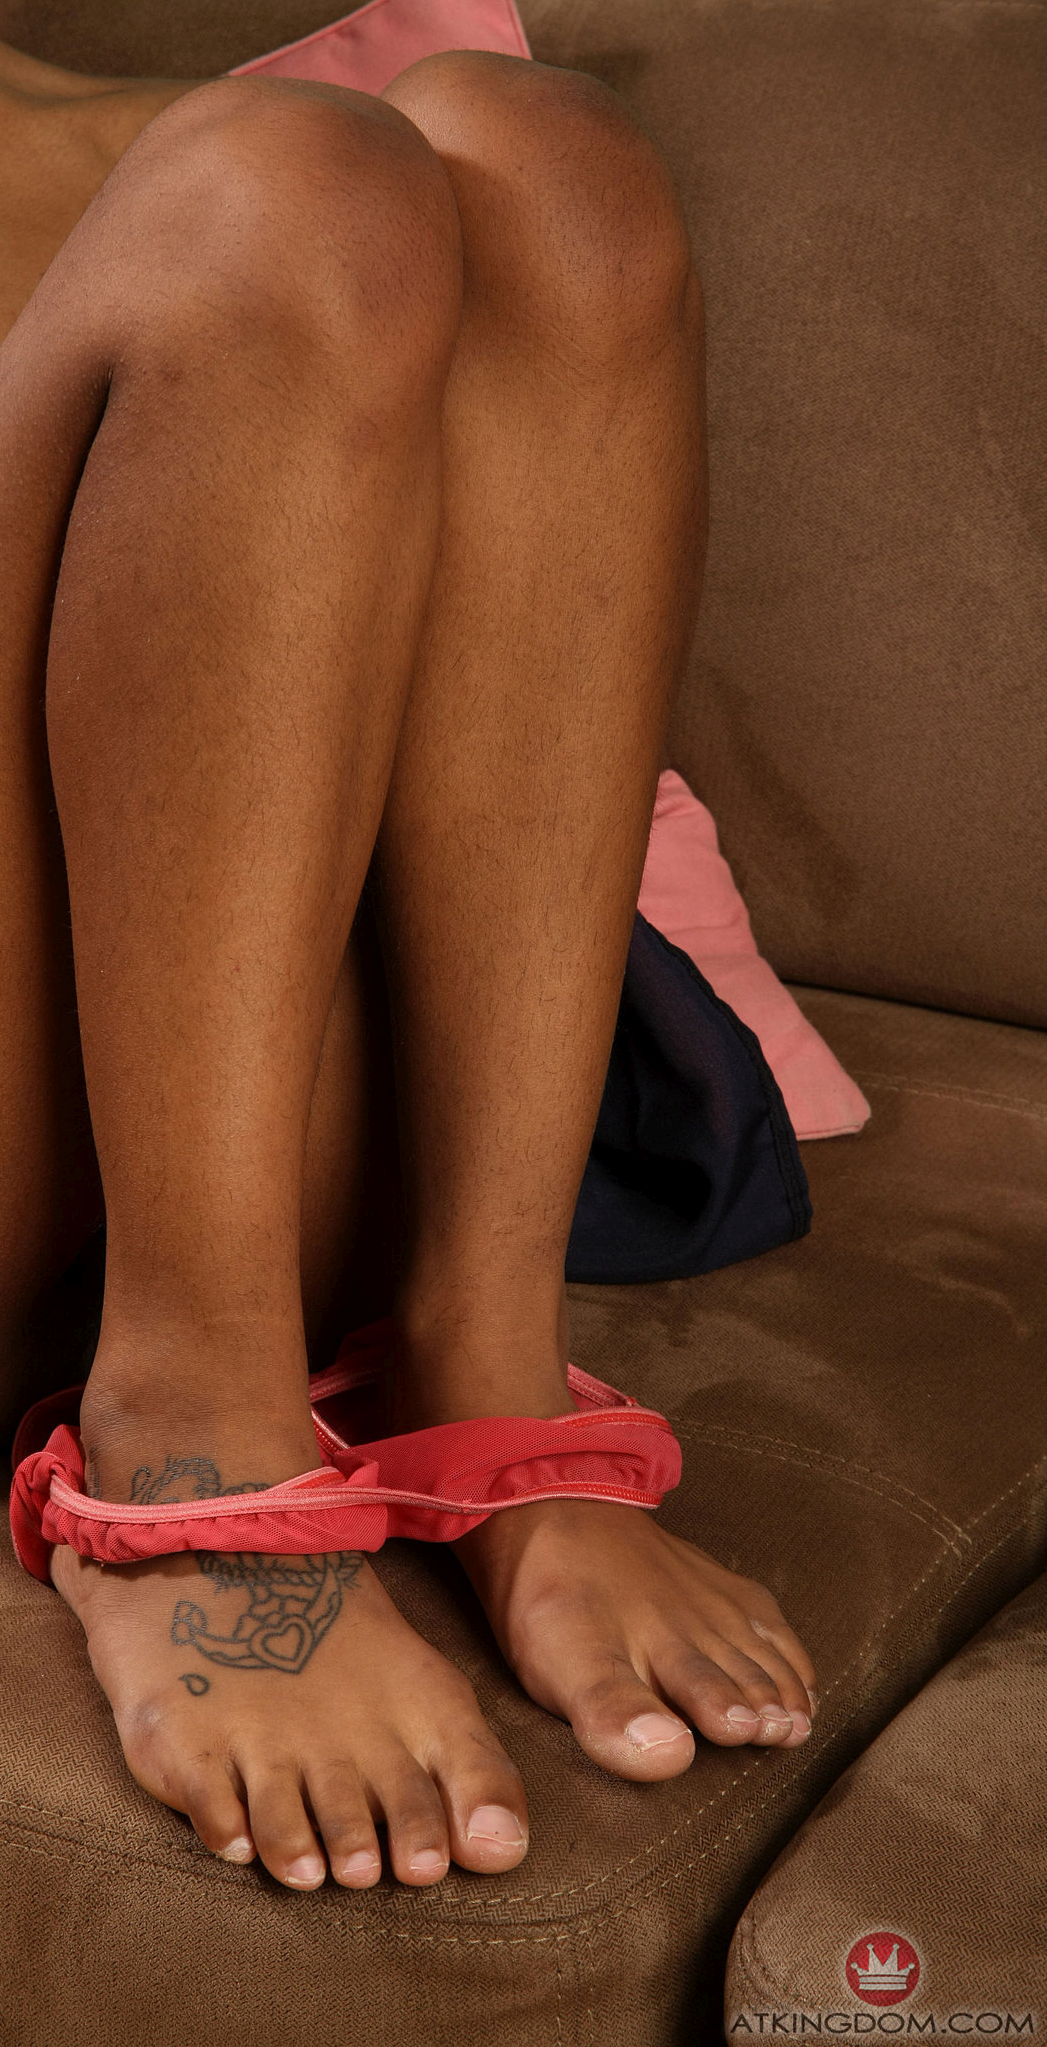 a girl named Yvette showing her legs and feet